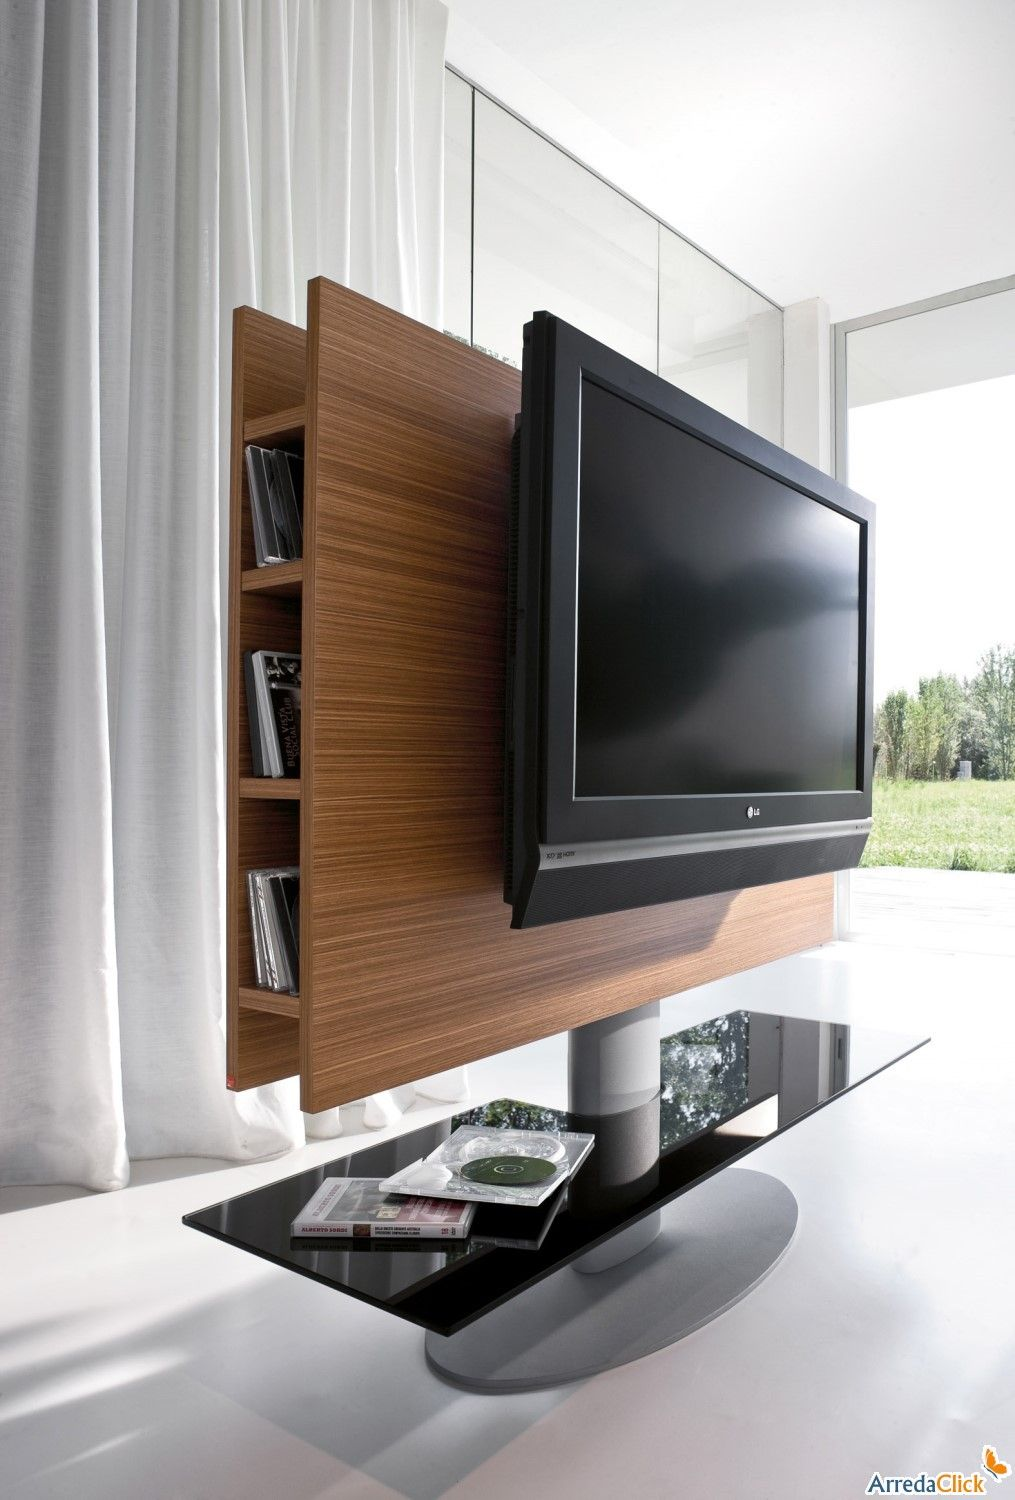 cortes schwenkbares tv st nder mit paneel aus holz. Black Bedroom Furniture Sets. Home Design Ideas